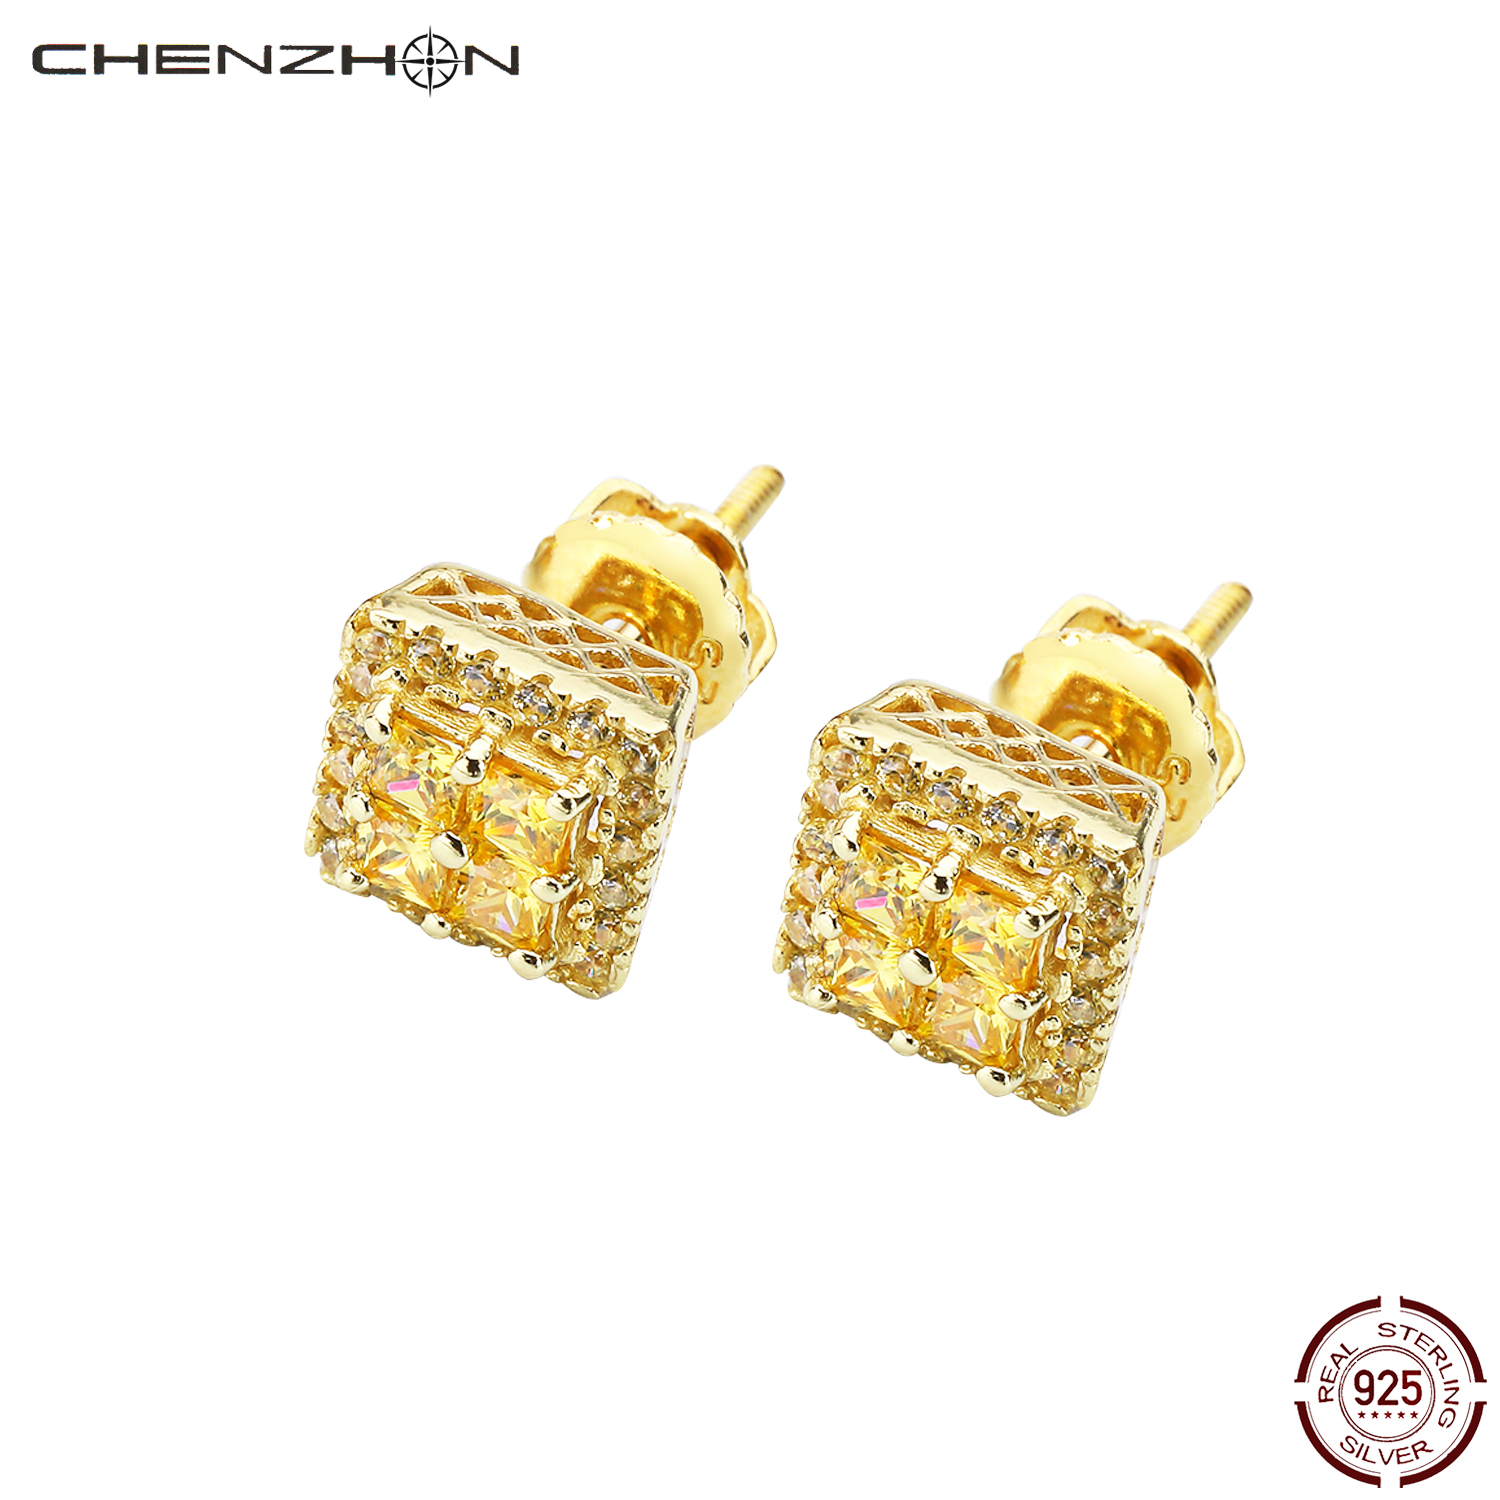 CHENZHON Stud Earrings 925 Sterling Silver For Women Multi-Color Jewelry Birthday Gift Cubic Zirconia Korean Earrings Box Pack